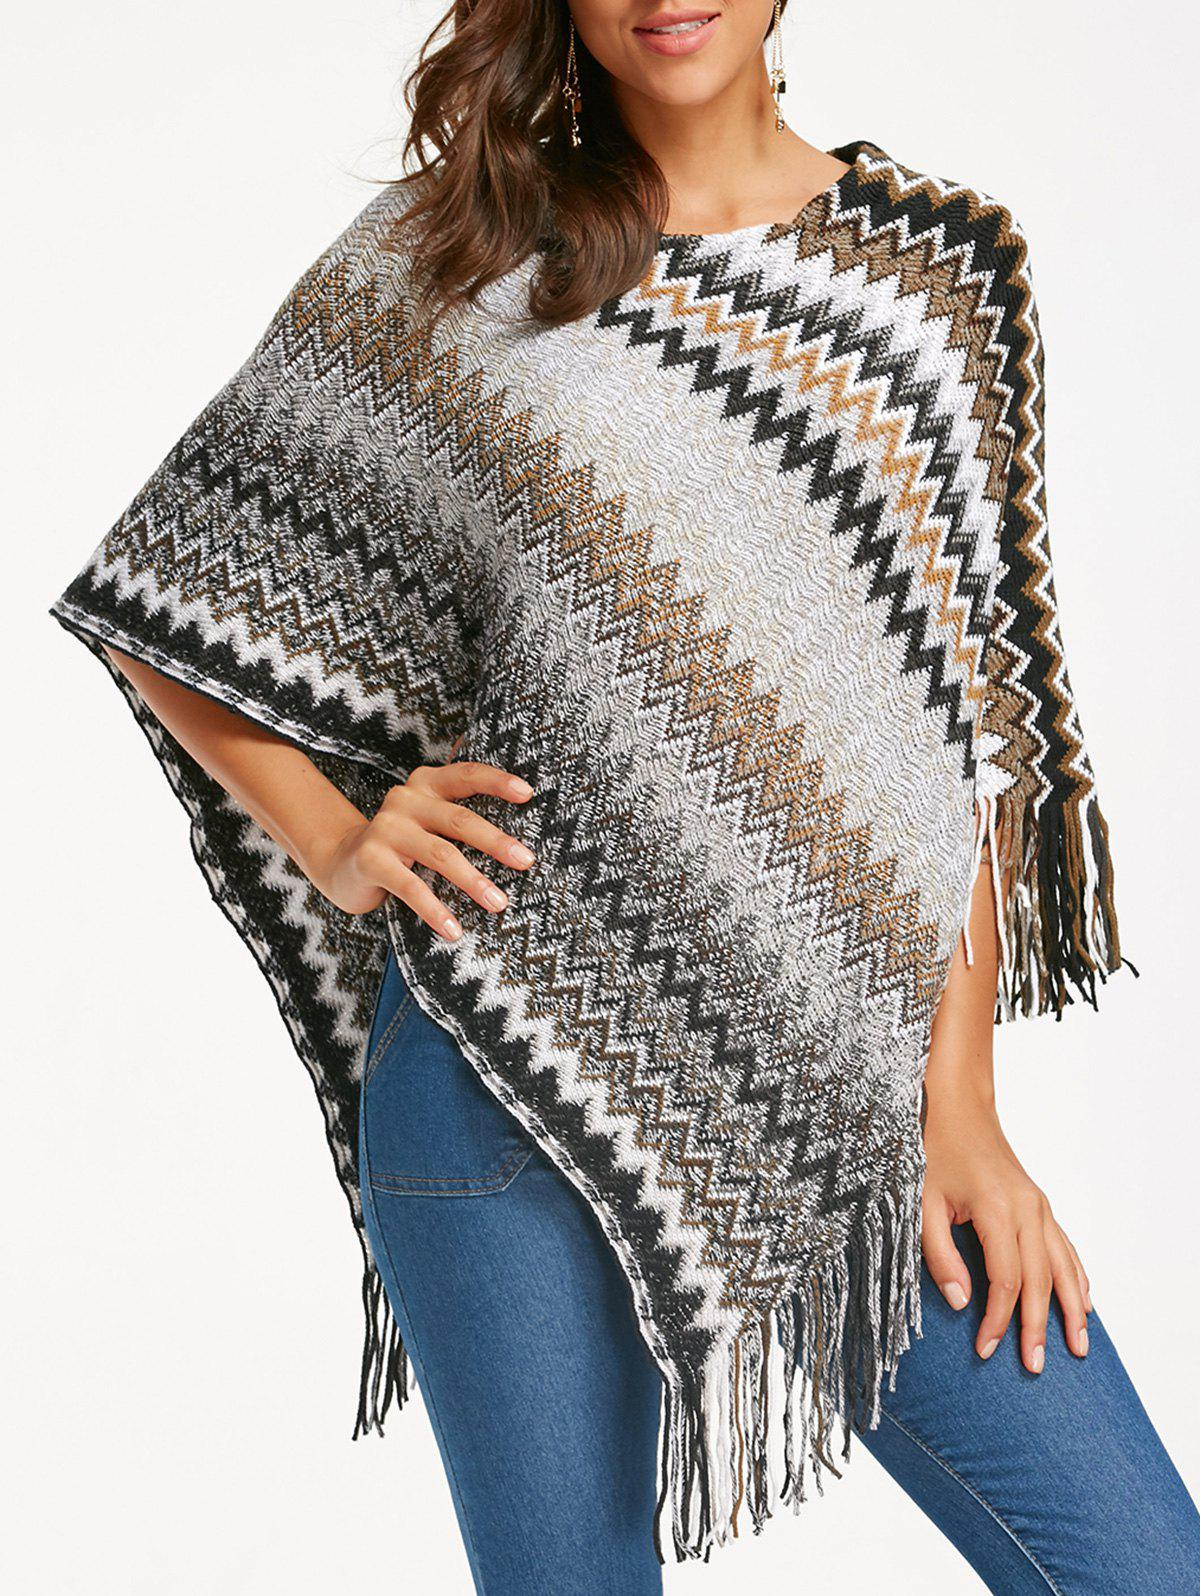 Zigzag Fringed Knitted Irregular PonchoWOMEN<br><br>Size: ONE SIZE; Color: CAMEL; Type: Pullovers; Material: Acrylic; Sleeve Length: Three Quarter; Collar: Round Neck; Style: Casual; Pattern Type: Chevron/Zig Zag; Season: Fall,Spring; Weight: 0.5600kg; Package Contents: 1 x Poncho;